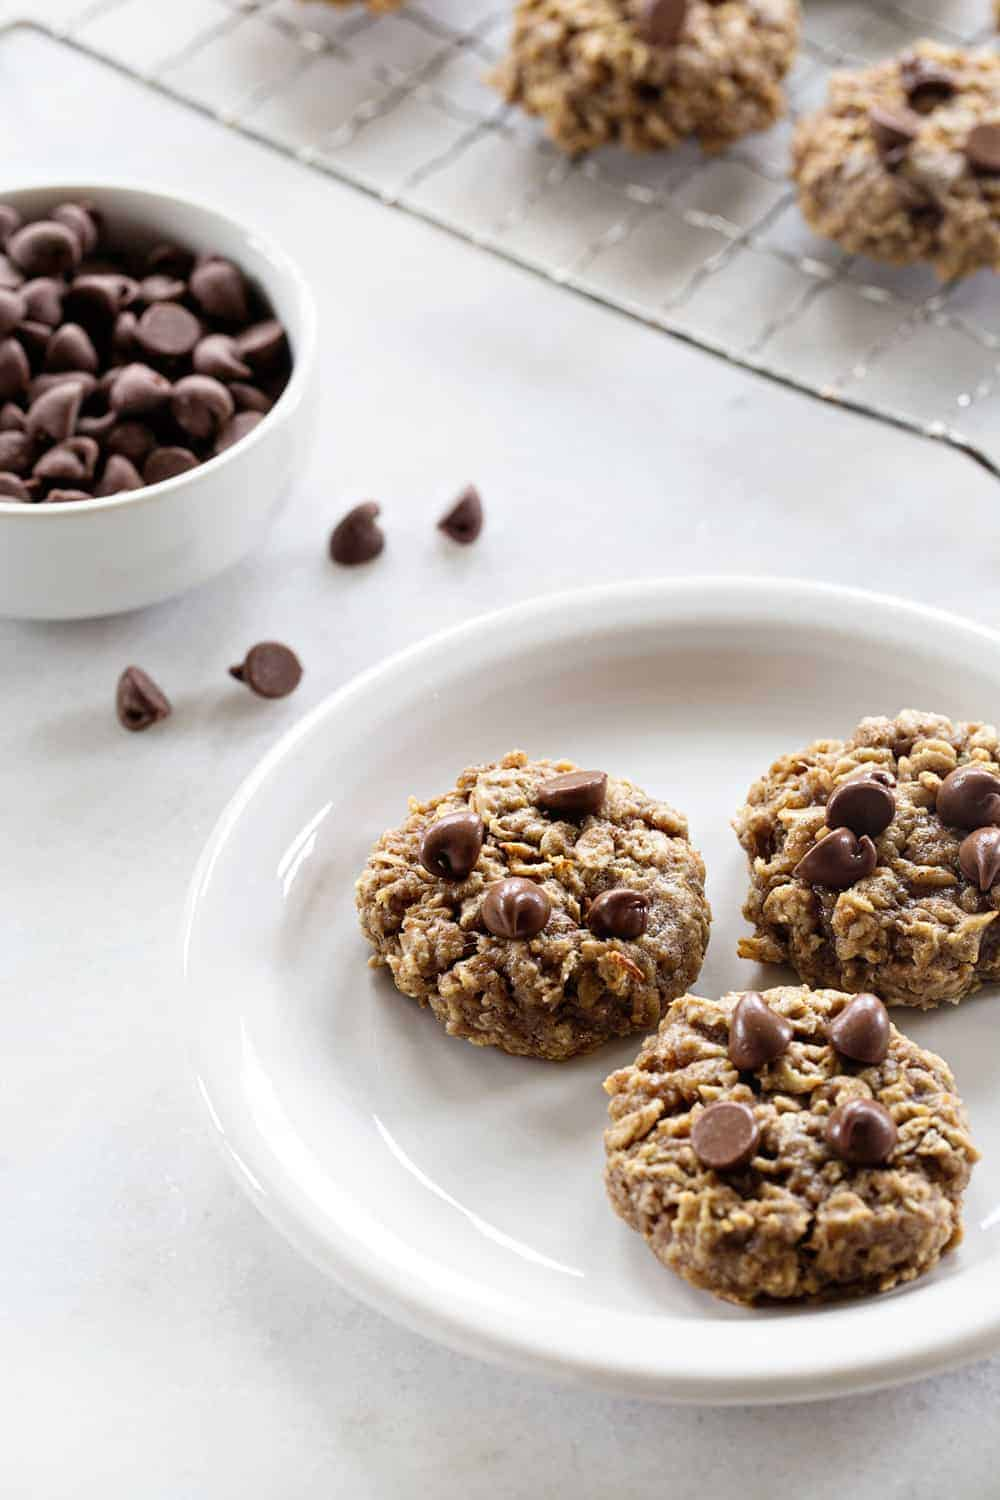 Banana Oatmeal Cookies are soft, chewy and studded with chocolate. Stir in walnuts or pecans for a little crunch!